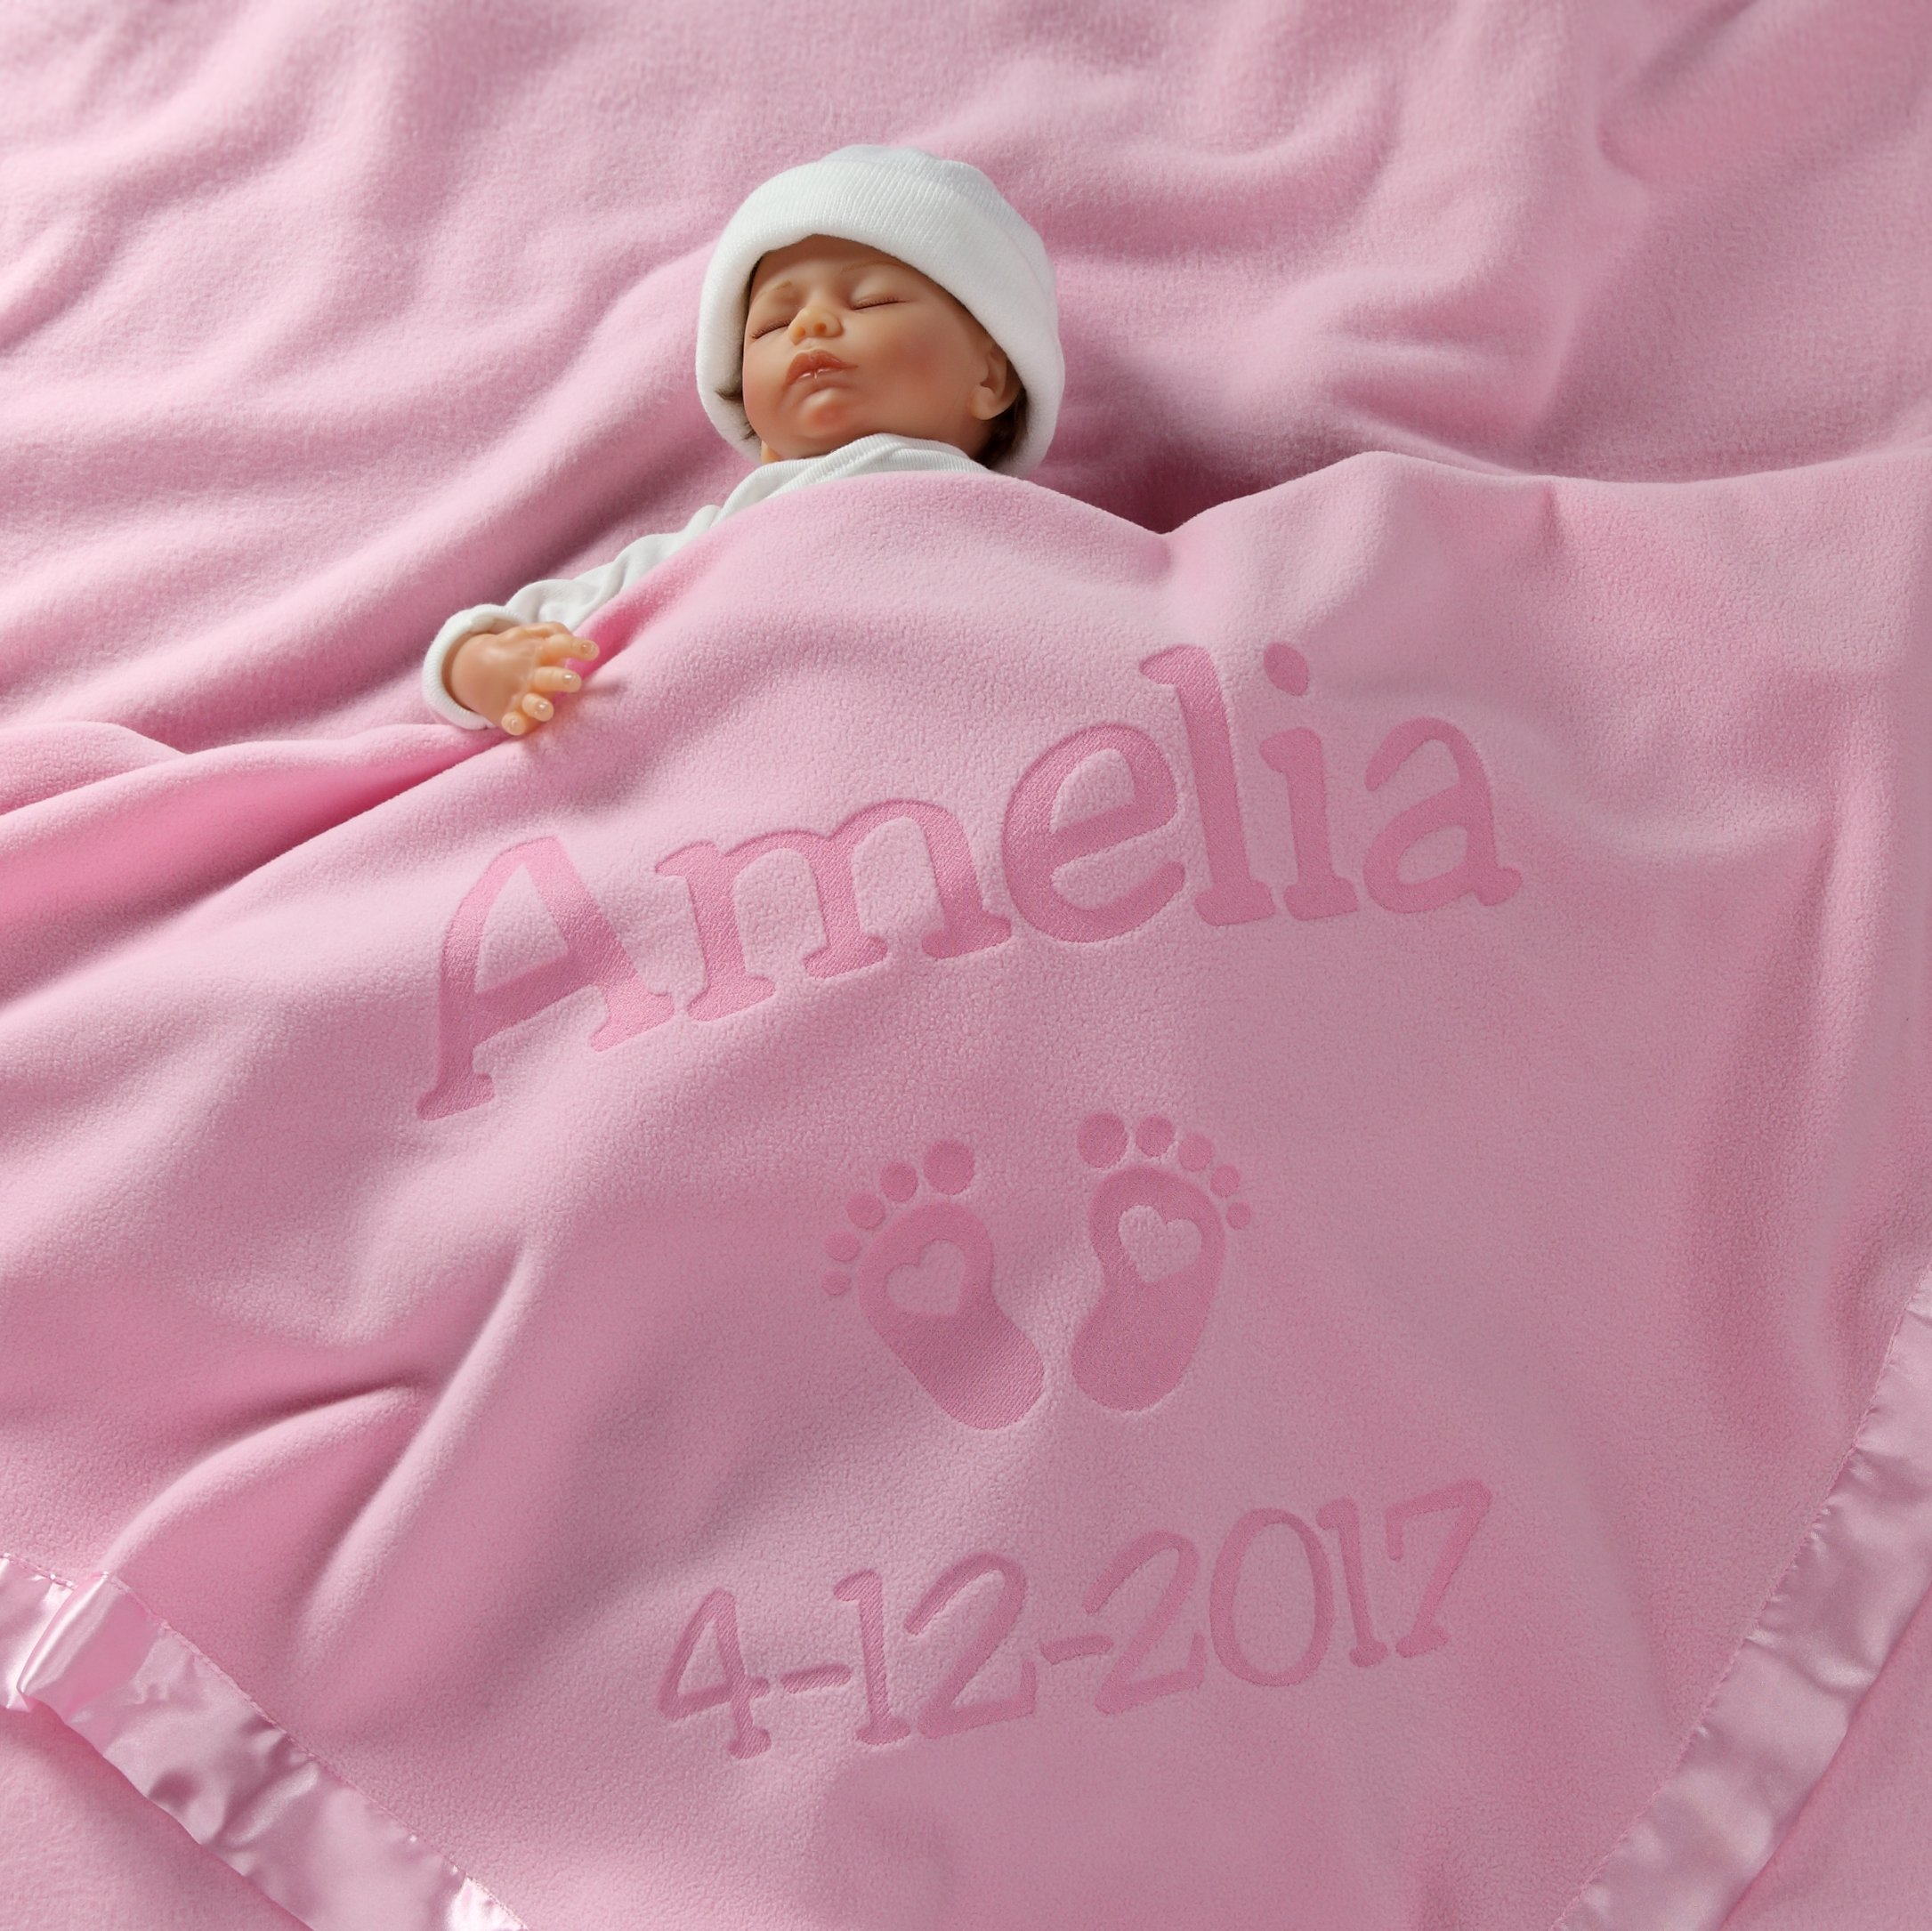 Personalized Newborn Gifts for Baby Girls, Boys, OR Parents - (36 x 36 inch) Satin Trim Custom Blanket with Name Plus Hearts and Feet Design - Add Birth Date, Weight (Pink, Blue - Long Text) by Custom Catch